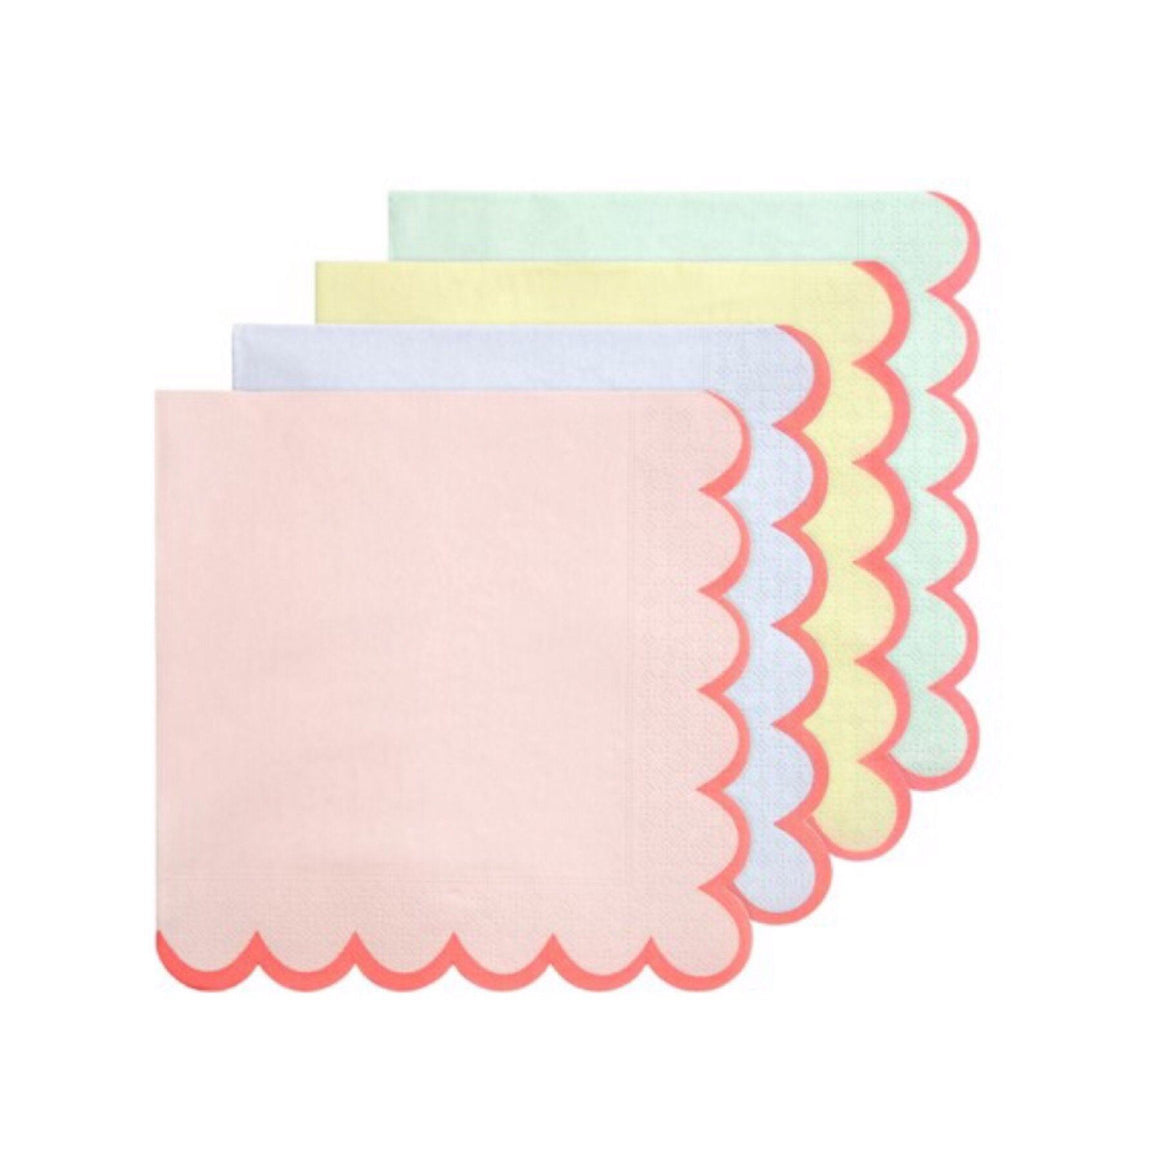 NAPKINS- SMALL PASTEL, NAPKINS, MERI MERI - Bon + Co. Party Studio